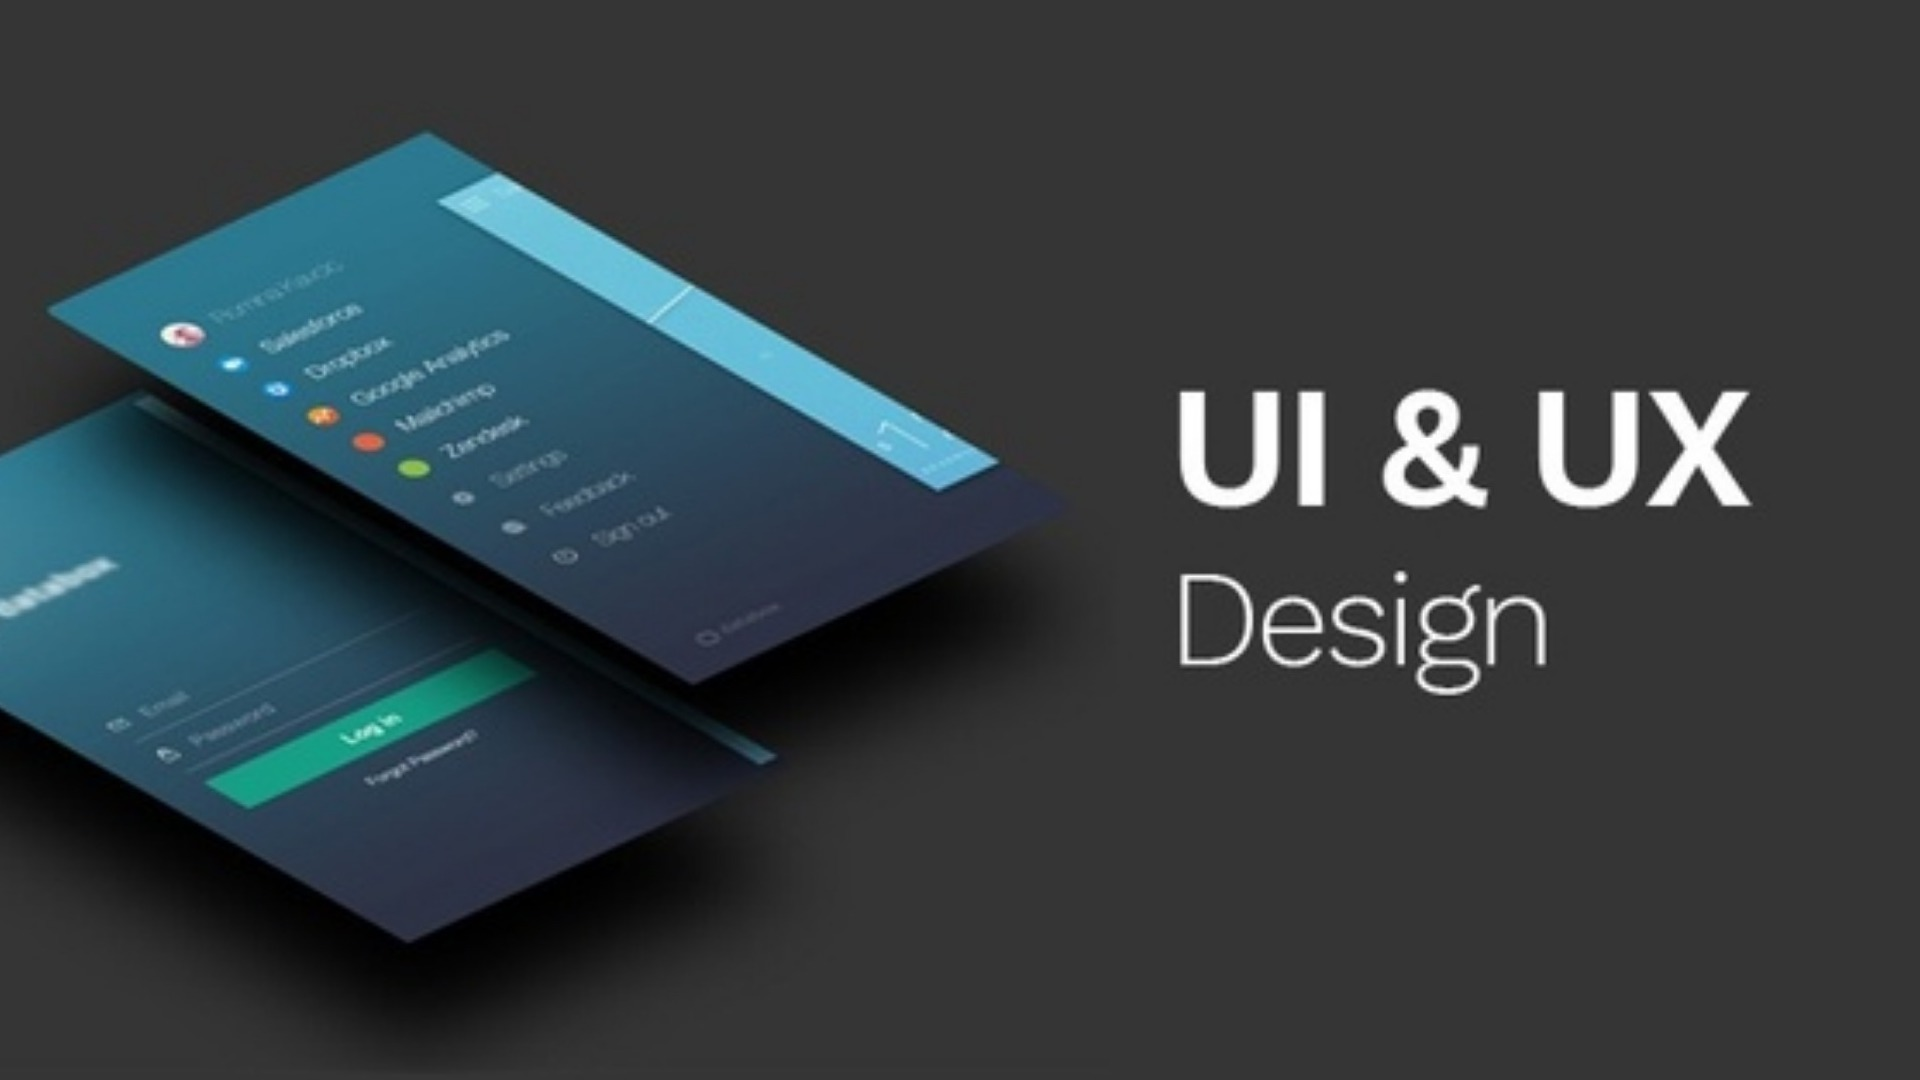 Ui Ux Design Certification Course In Pune Tickets By Kuldeep Tiwari Wednesday September 25 2019 Pune Event